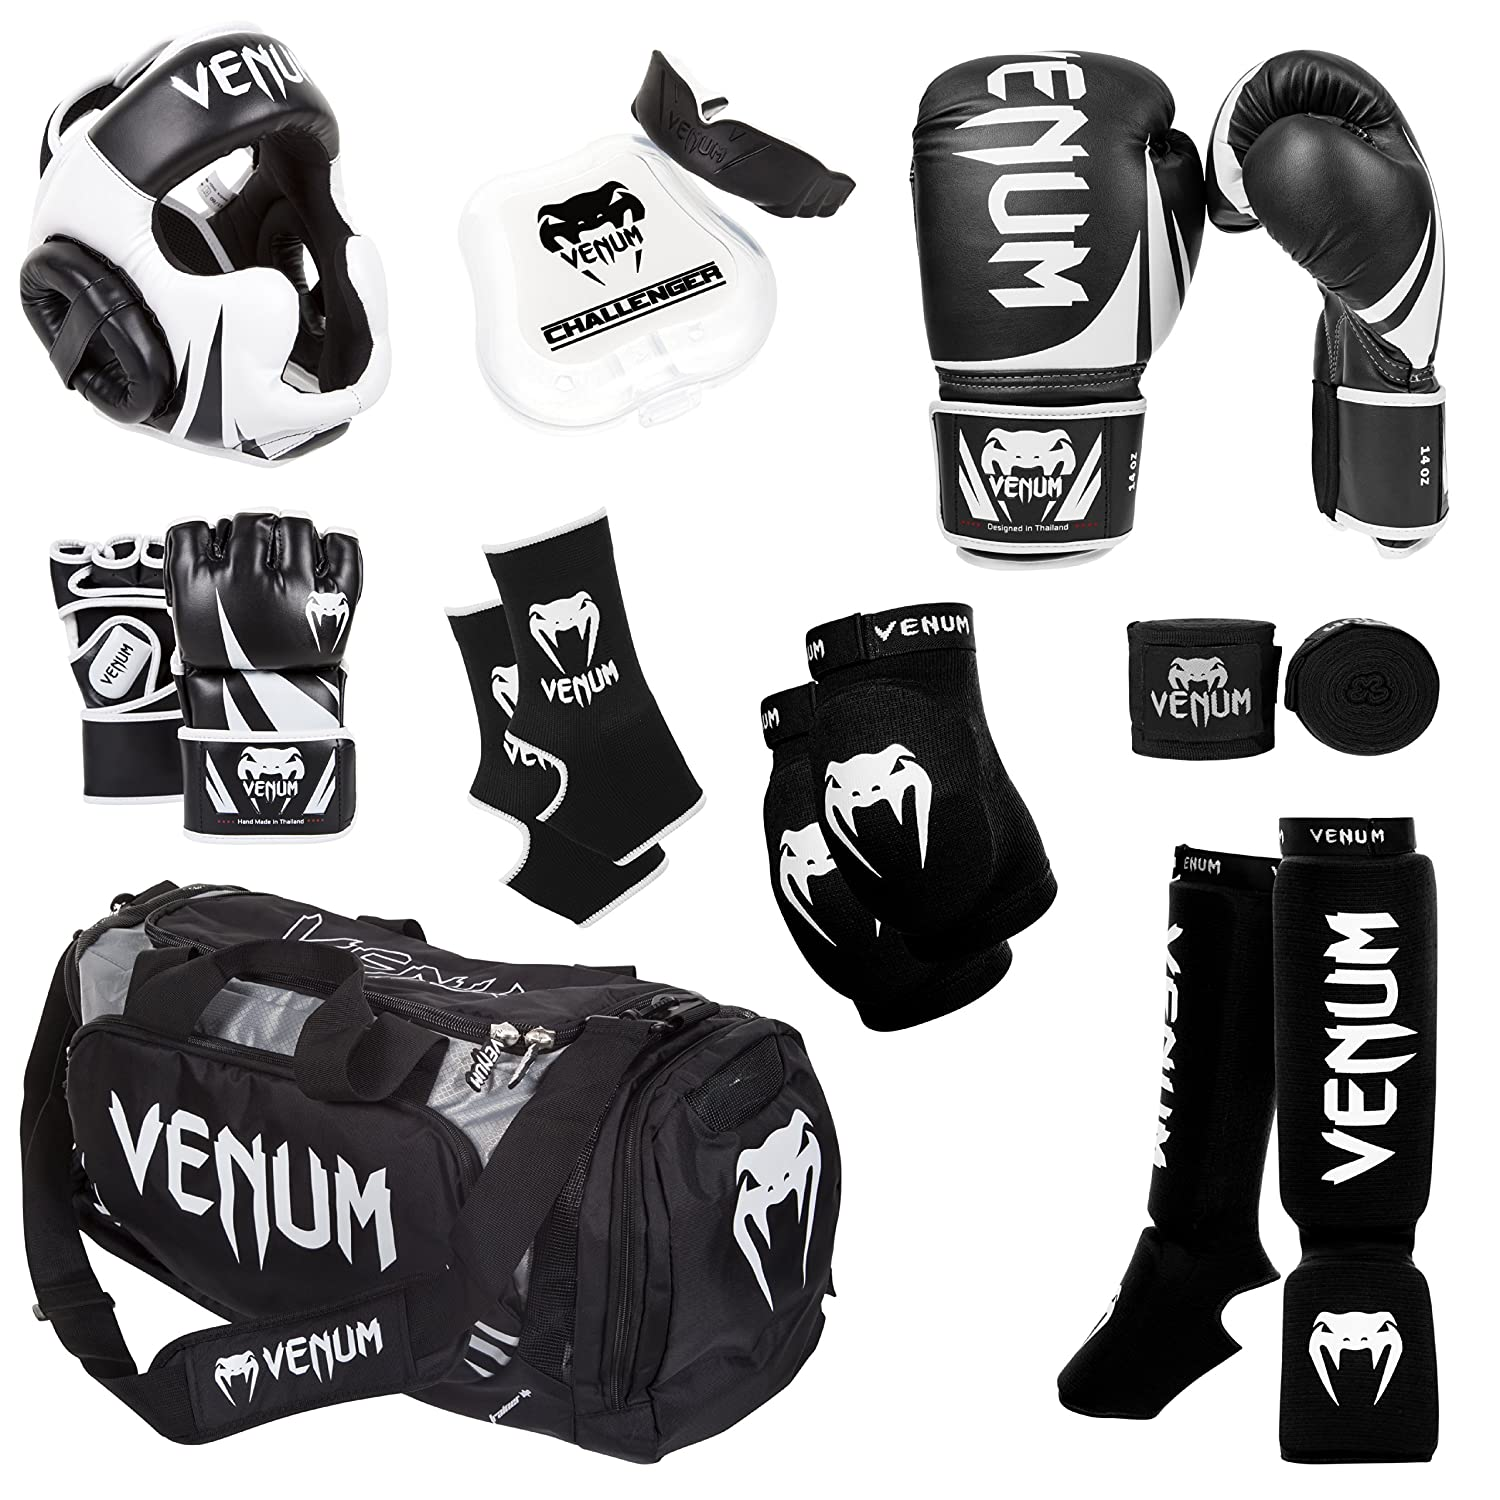 Venum Challenger 2.0 MMAトレーニングセット 黒 Gloves, 黒 In-Step Shinguards, 黒 MMA Gloves, 黒 Headgear, 黒 Handwraps, 黒/白い Mouthguard, 黒 Sport Bag, 黒 Ankle Support, 黒 Elbow Protector 12-Oz. Boxing Gloves, L/X-L MMA Gloves